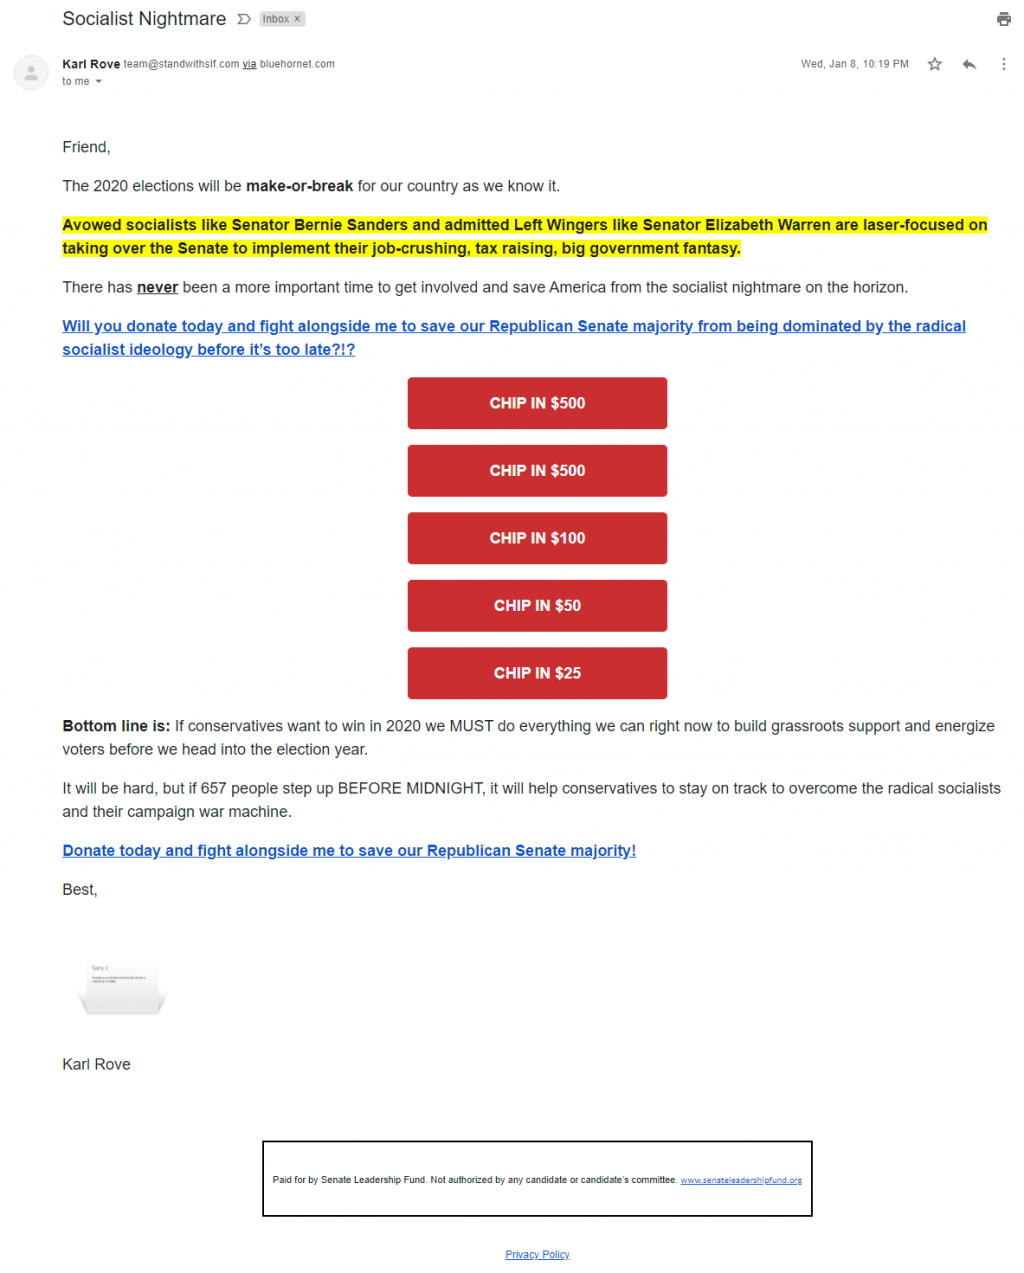 Karl Rove's email for the Senate Leadership Fund